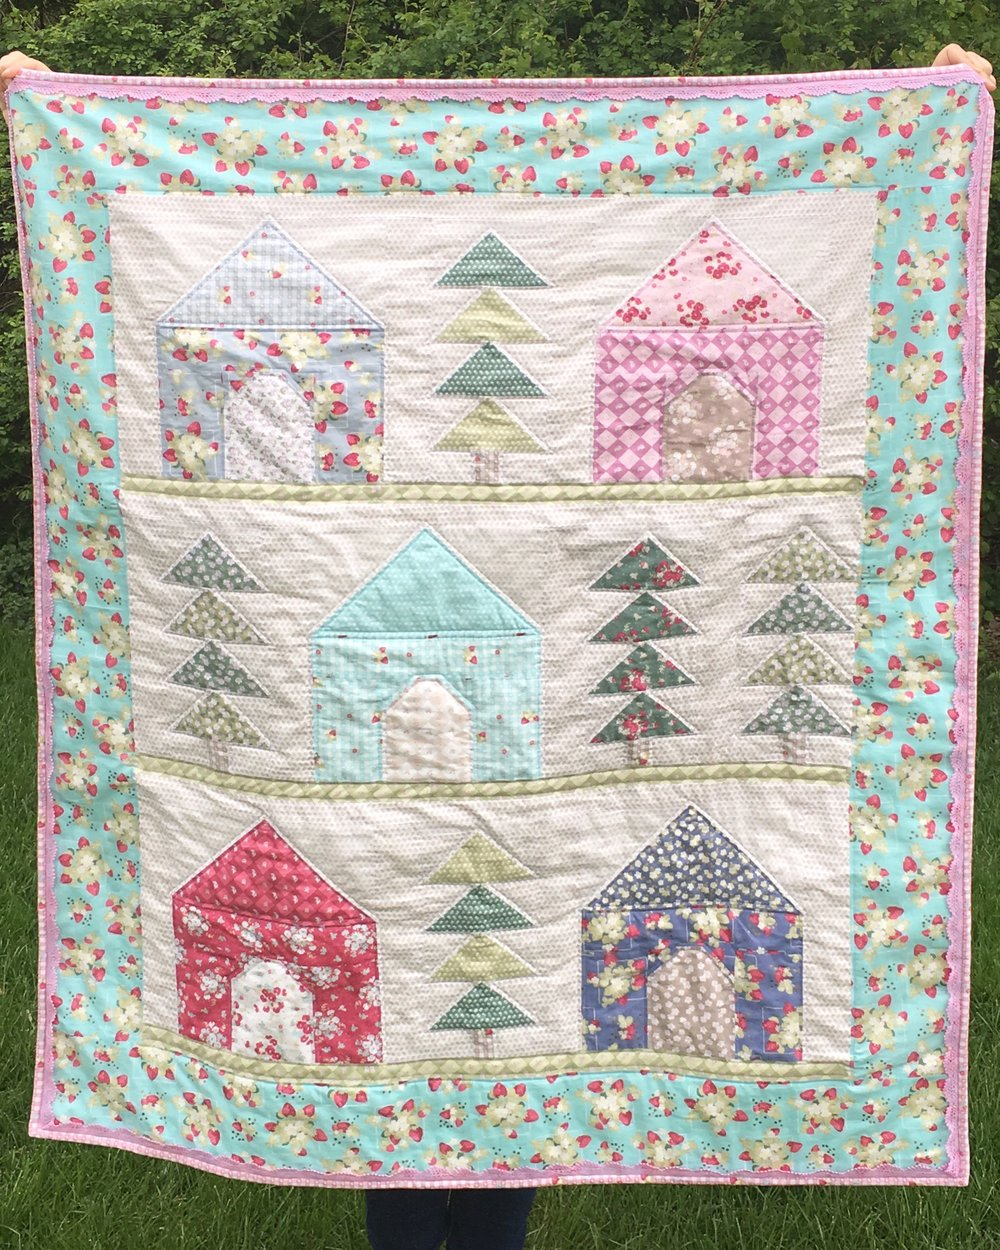 Cozy Cabins Quilt made by Faith Essenburg - designed by Jera Brandvig